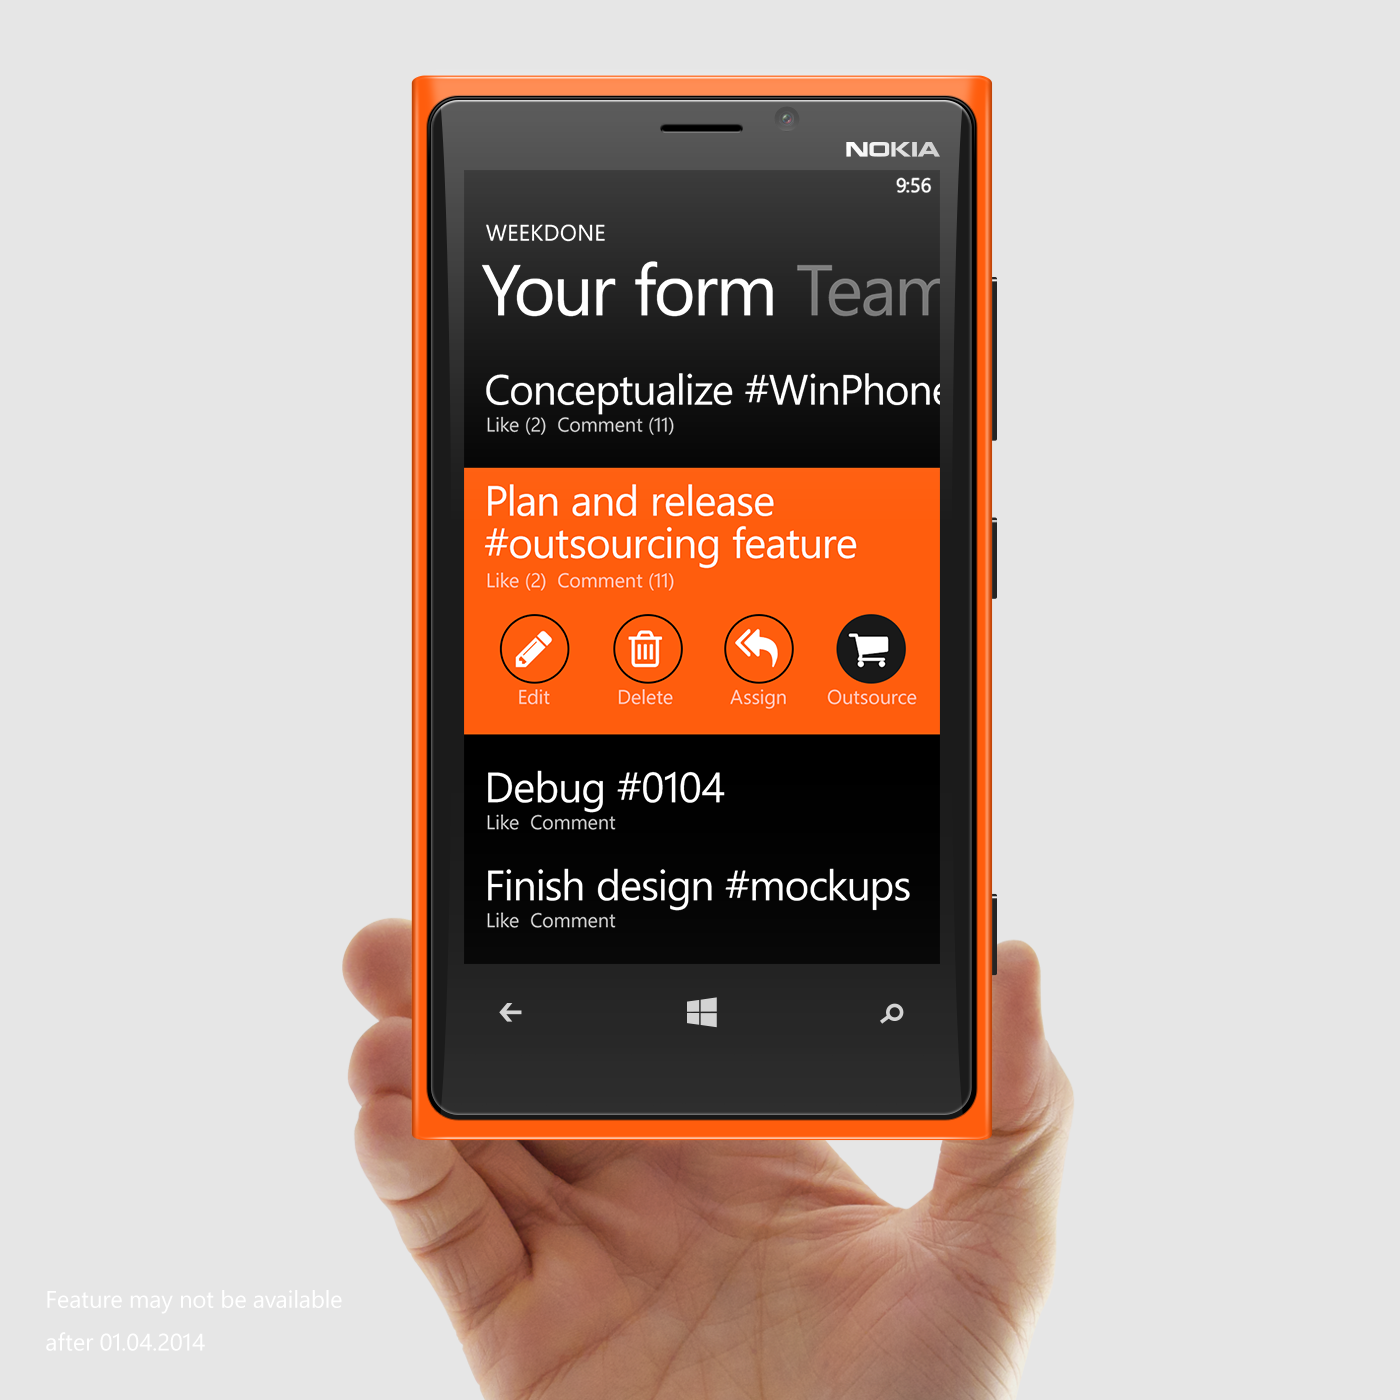 Weekdone Plan Outsourcing Windows Phone